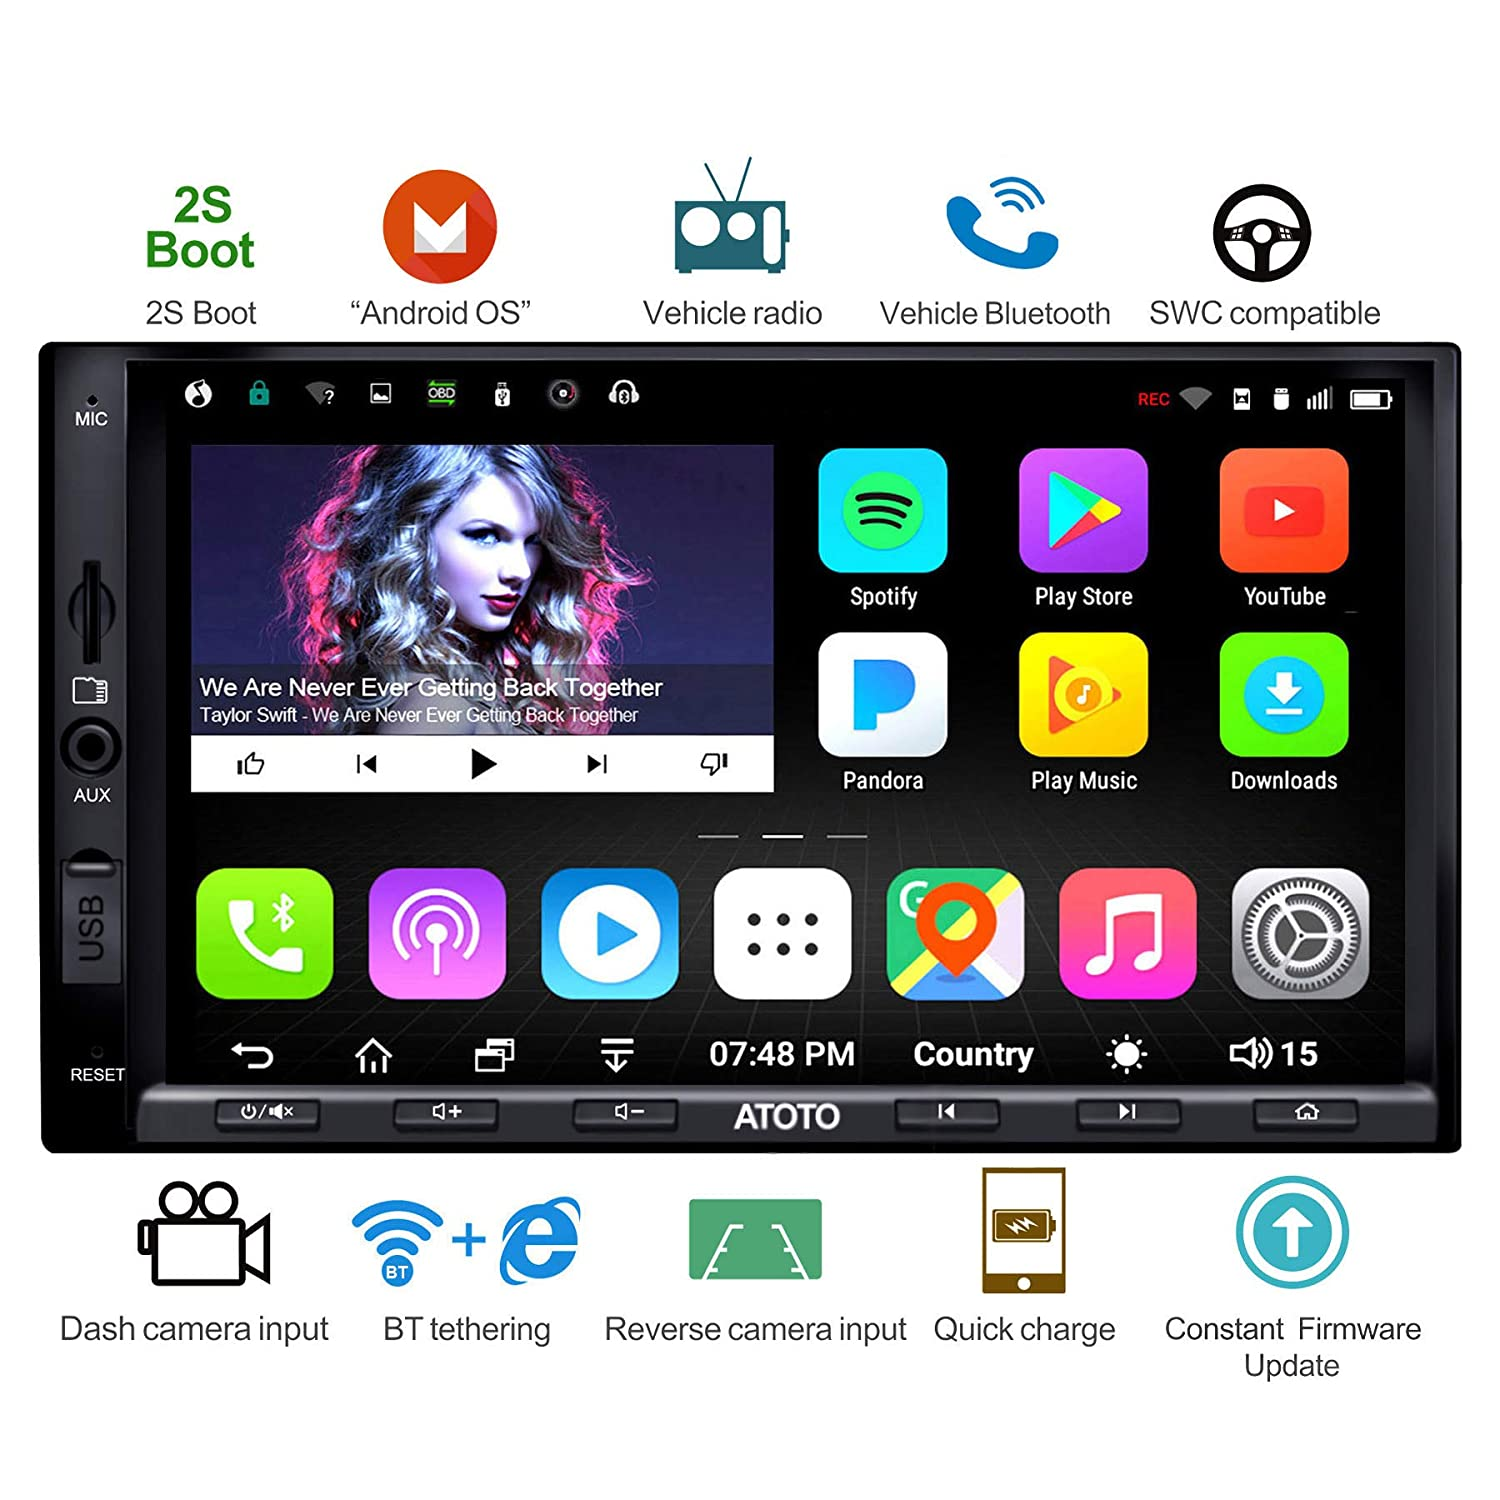 ATOTO A6 Android Car Navigation Stereo w/Dual Bluetooth & Quick Charge -  Premium A6Y2721PB 2G/32G Universal Auto Entertainment Multimedia